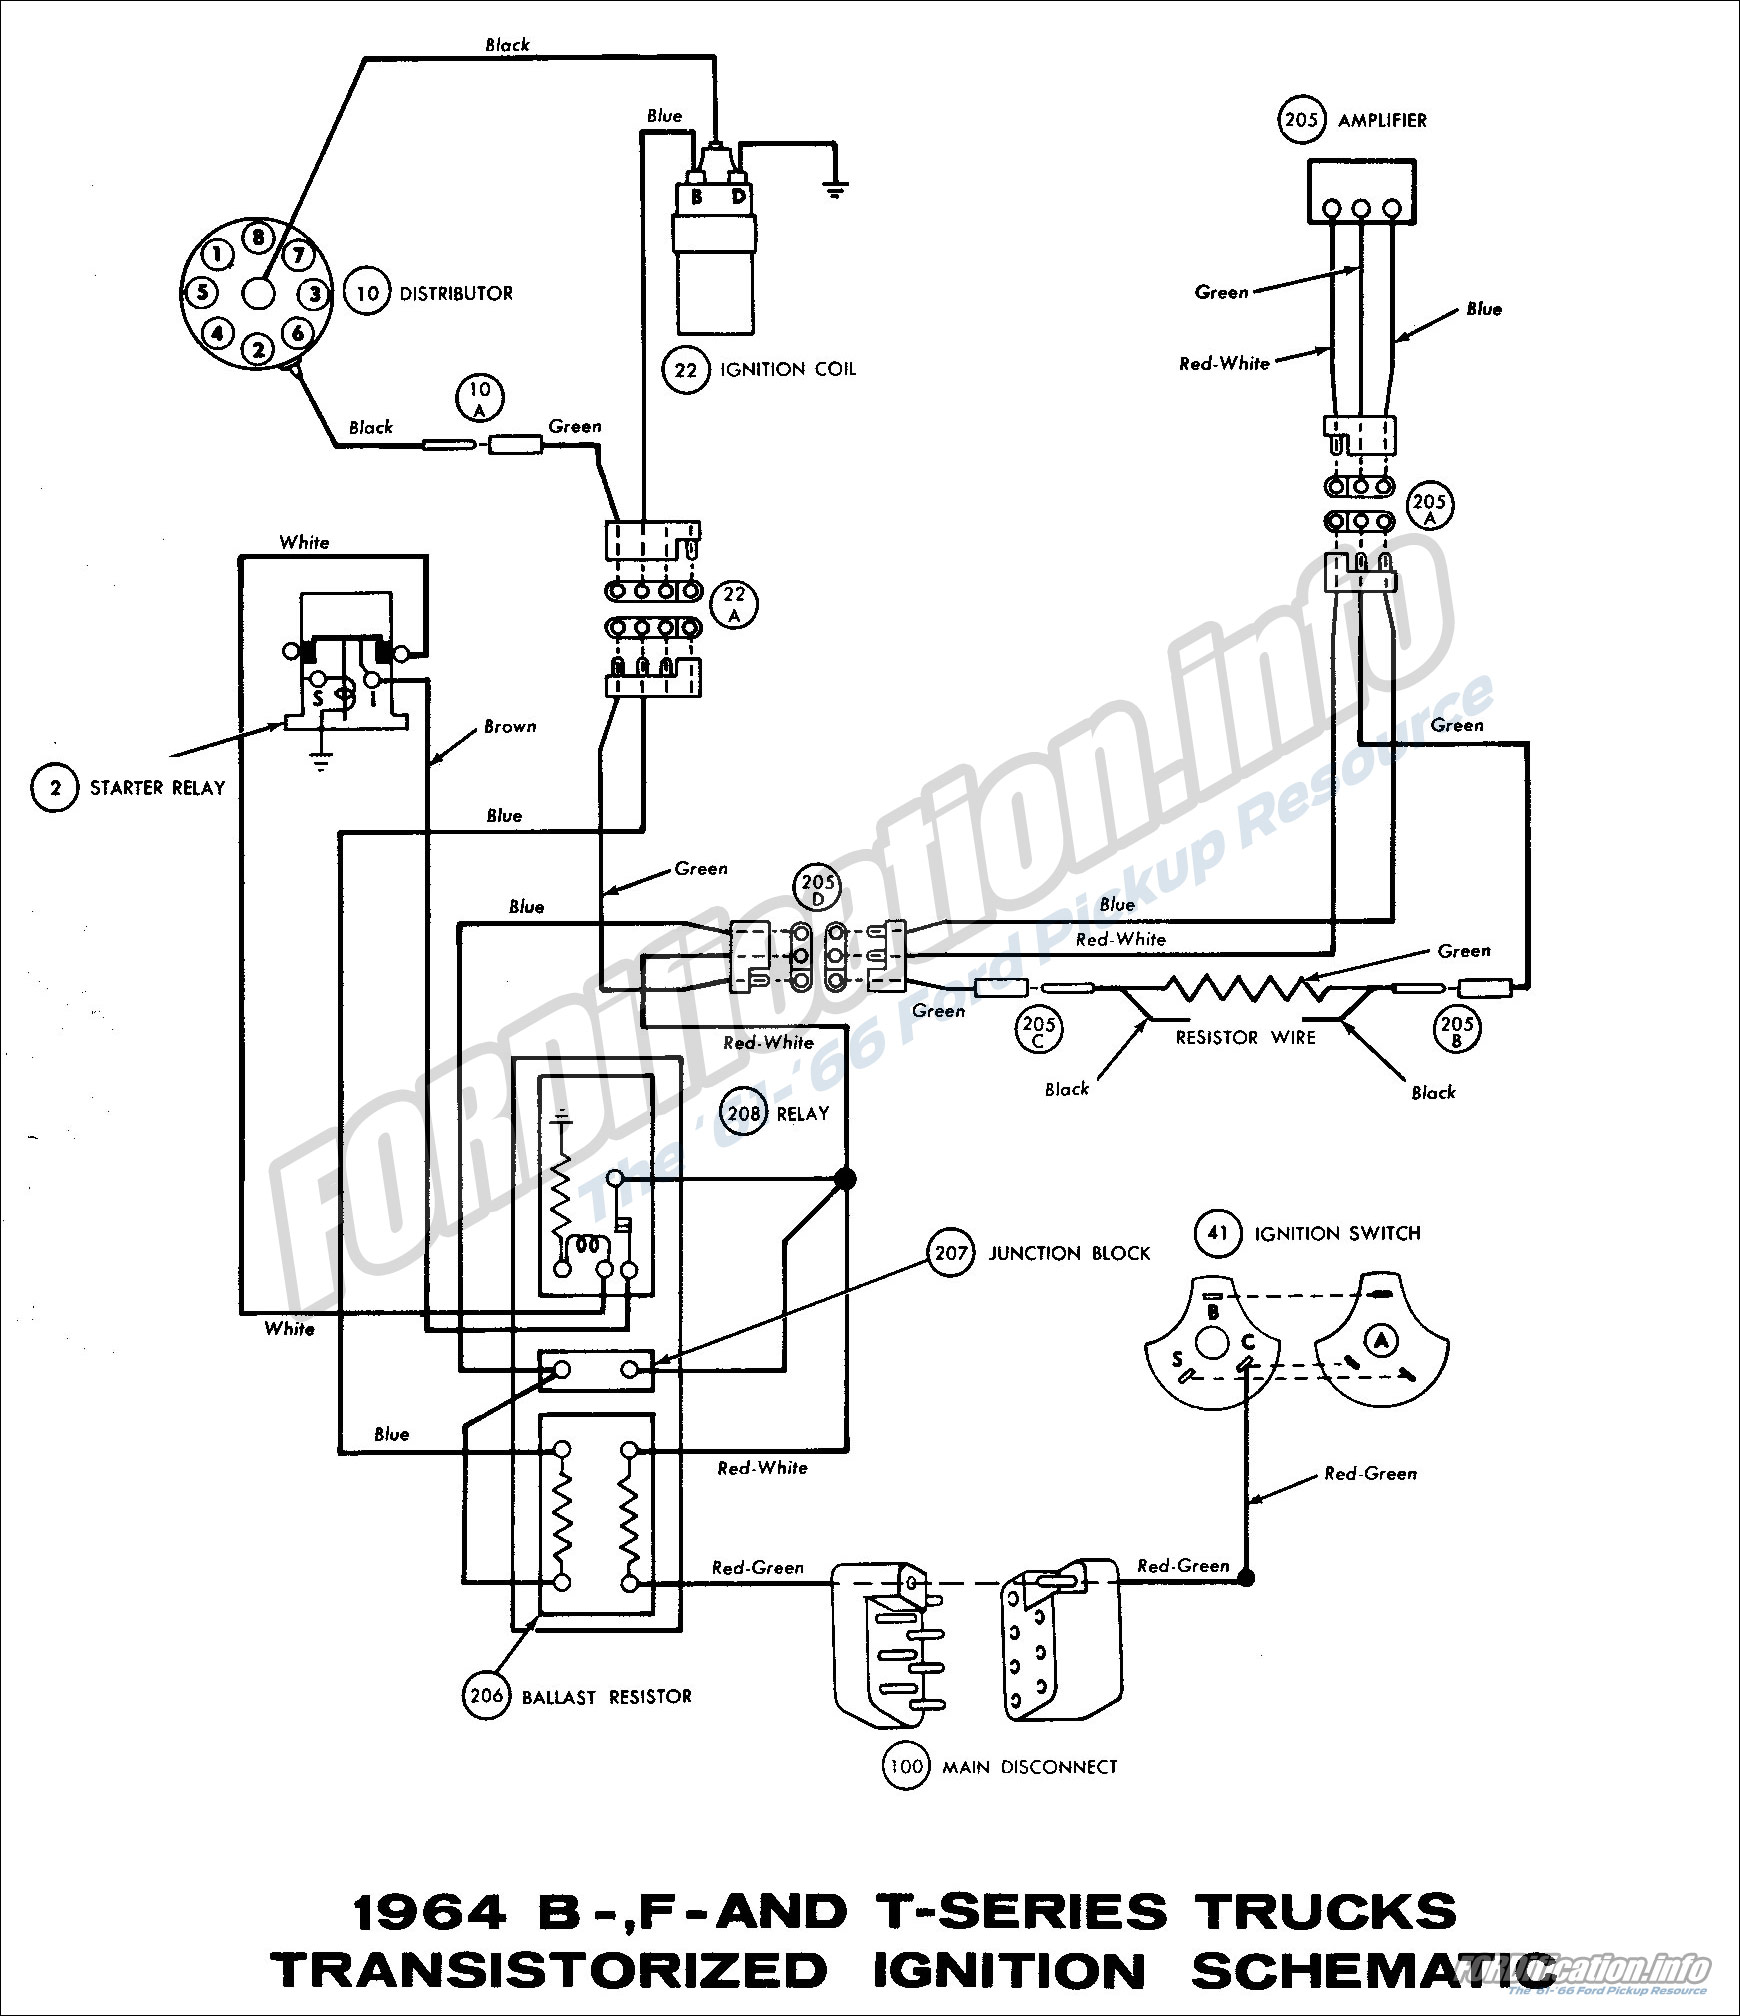 [SCHEMATICS_4FR]  1964 Ford Truck Wiring Diagrams - FORDification.info - The '61-'66 Ford  Pickup Resource | 1966 Ford F100 Blinker Switch Wiring |  | FORDification.info